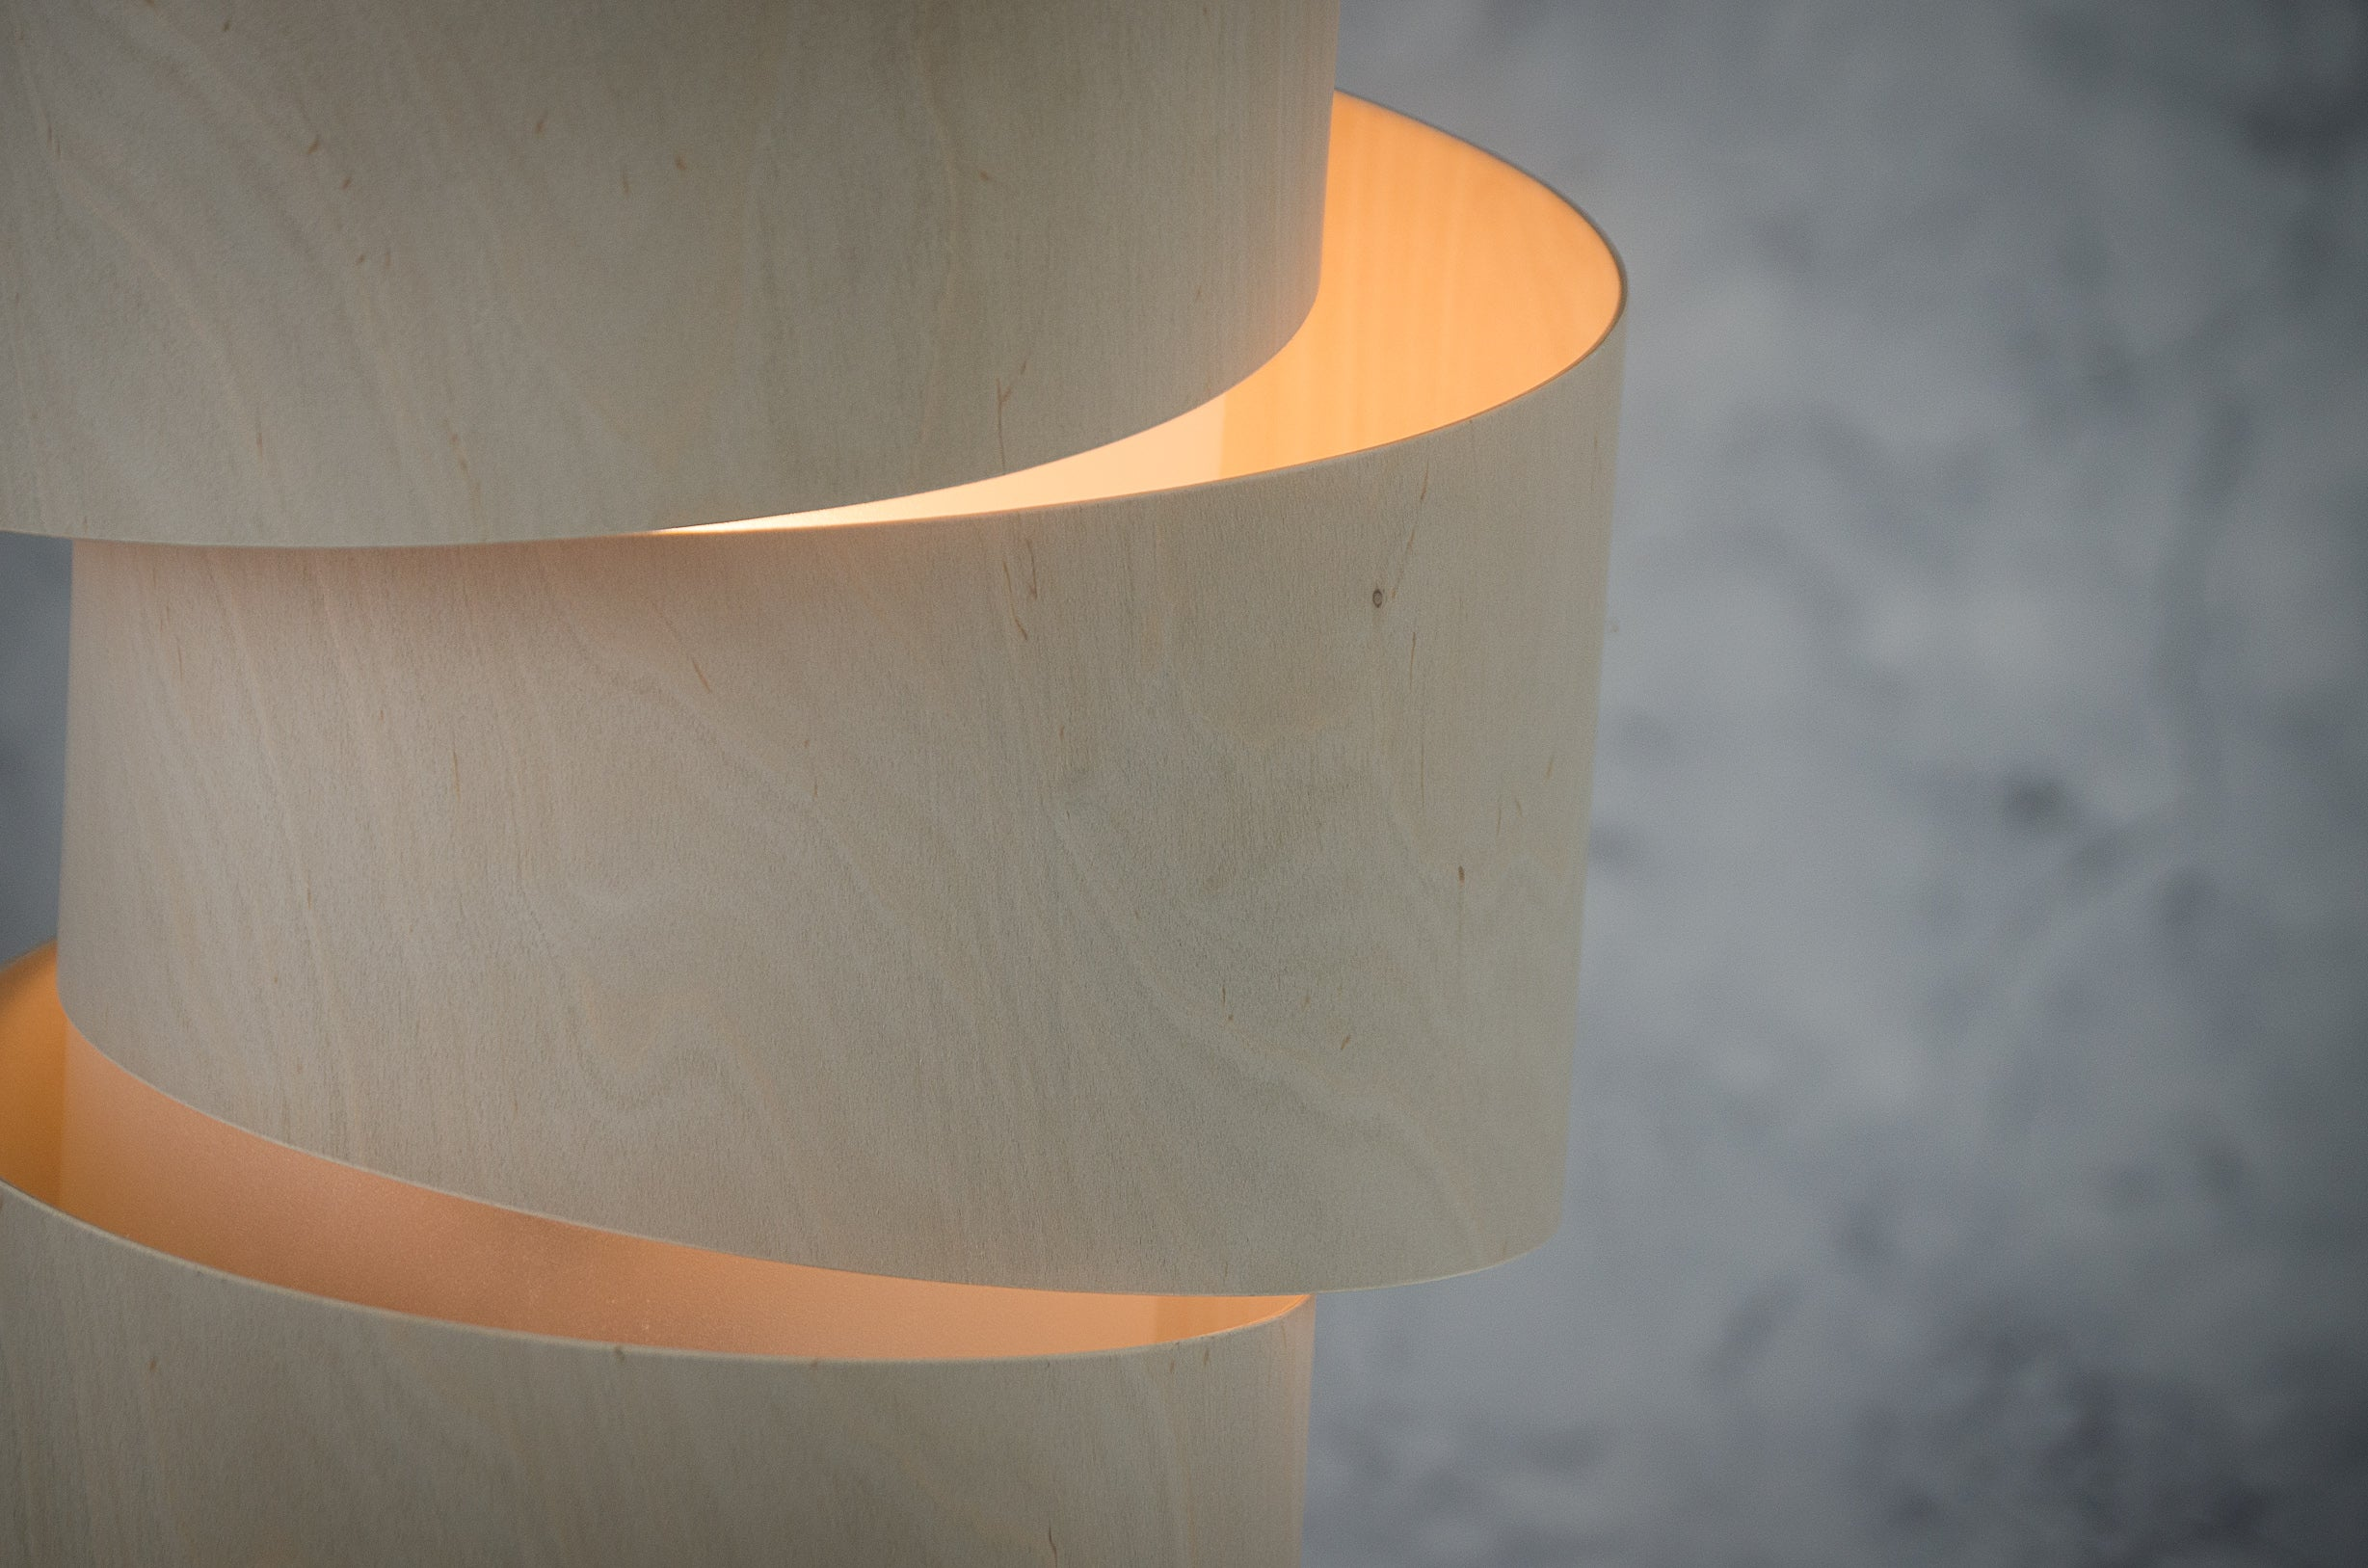 Handcrafted in Devon using sustainable woods, these lamps make great statement pieces for any modern interior. Oak base with bent birch ply & opaque polypropylene shade. These are made to order and take 10-14 days delivered direct to you.